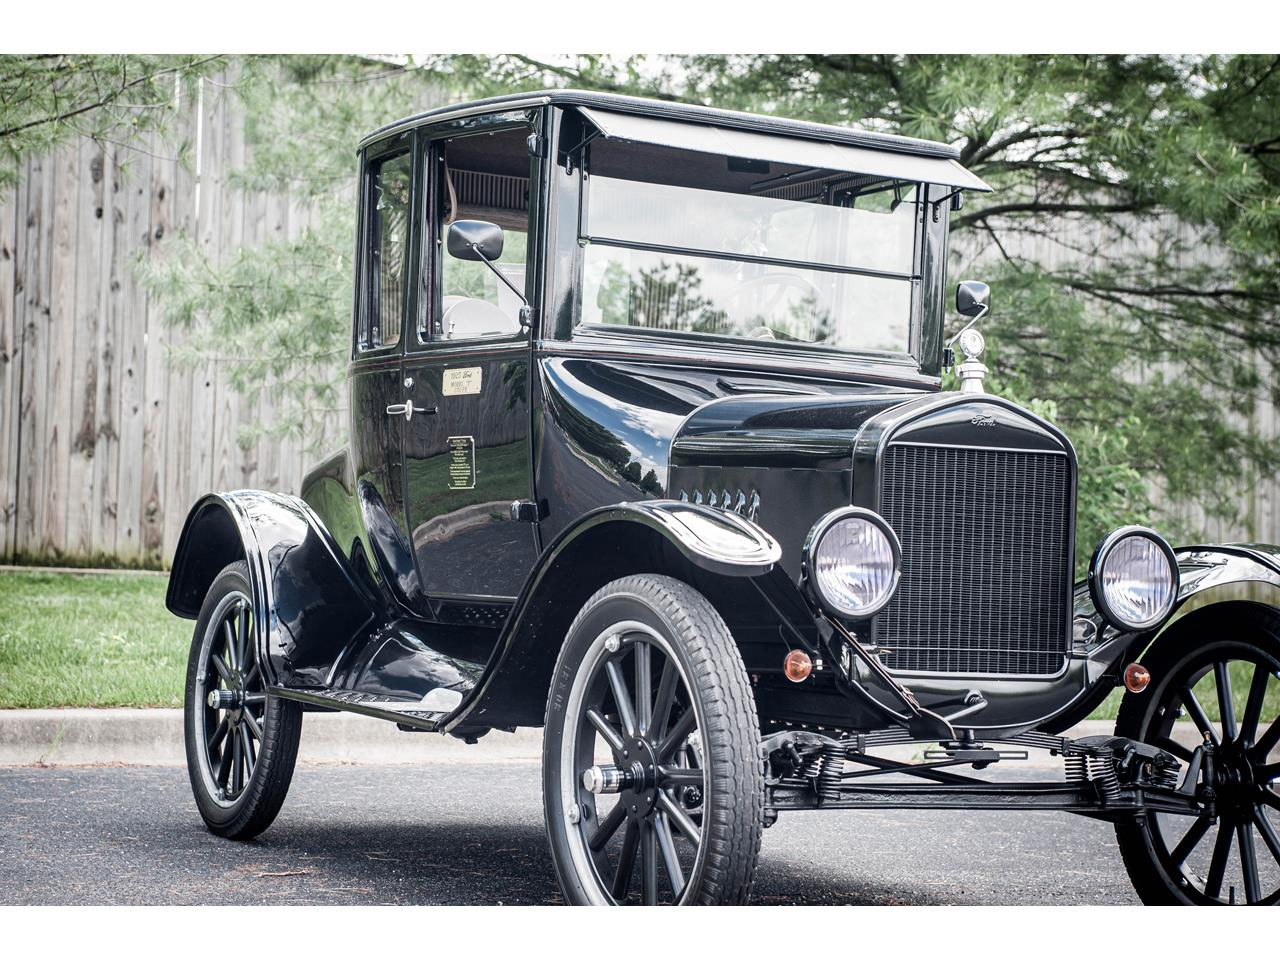 Large Picture of 1925 Ford Model T located in Illinois - $18,000.00 - QB96